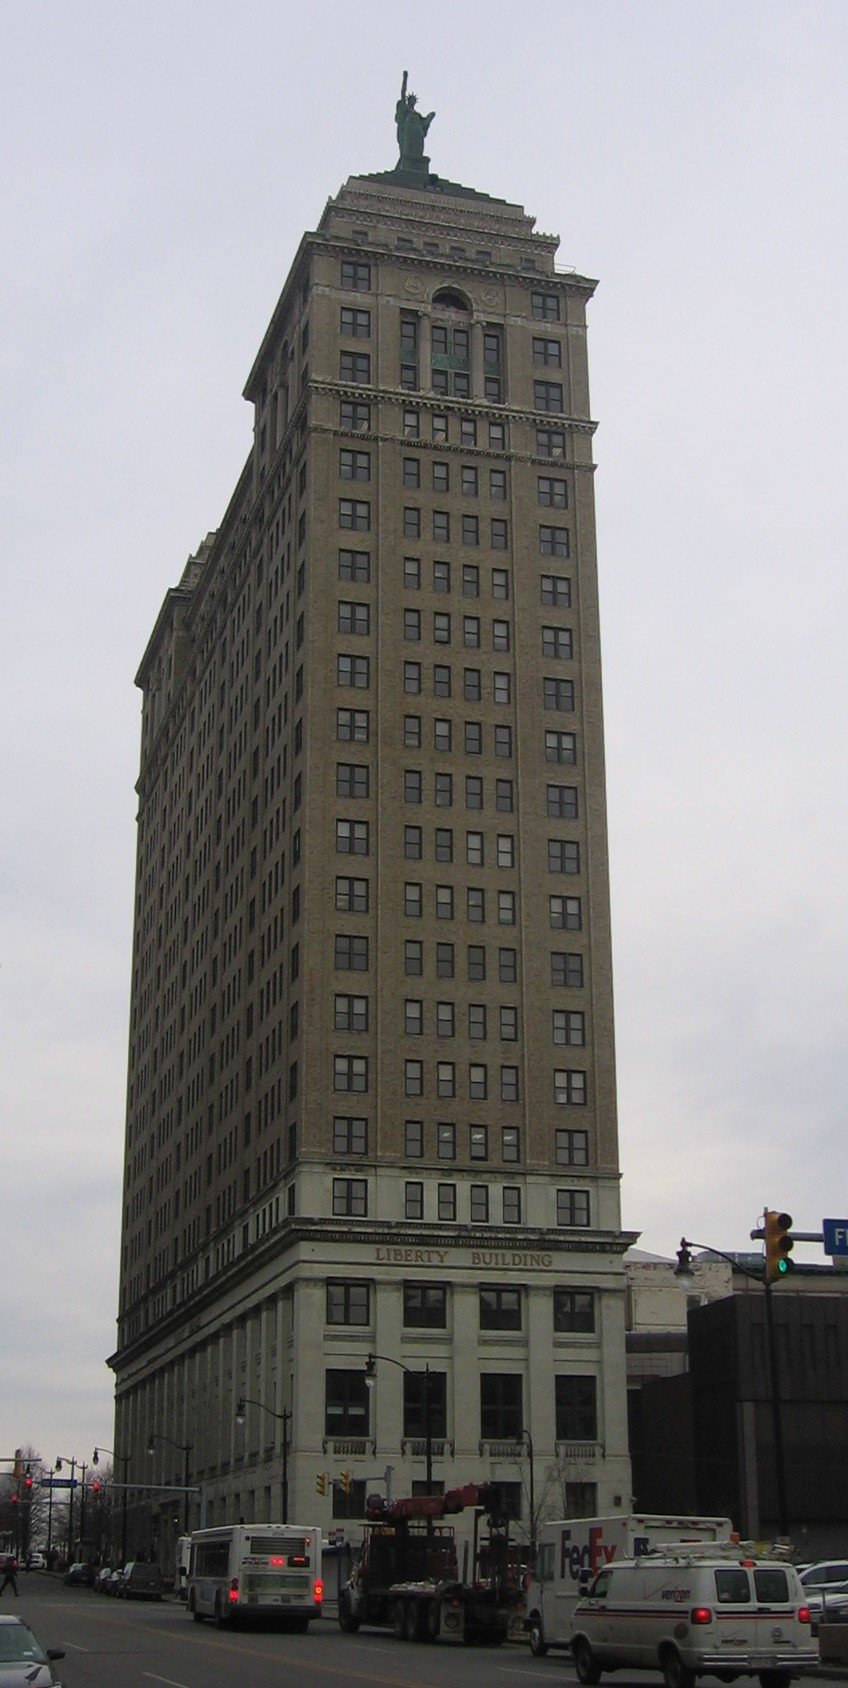 http://upload.wikimedia.org/wikipedia/commons/b/b2/Liberty_Building.jpg